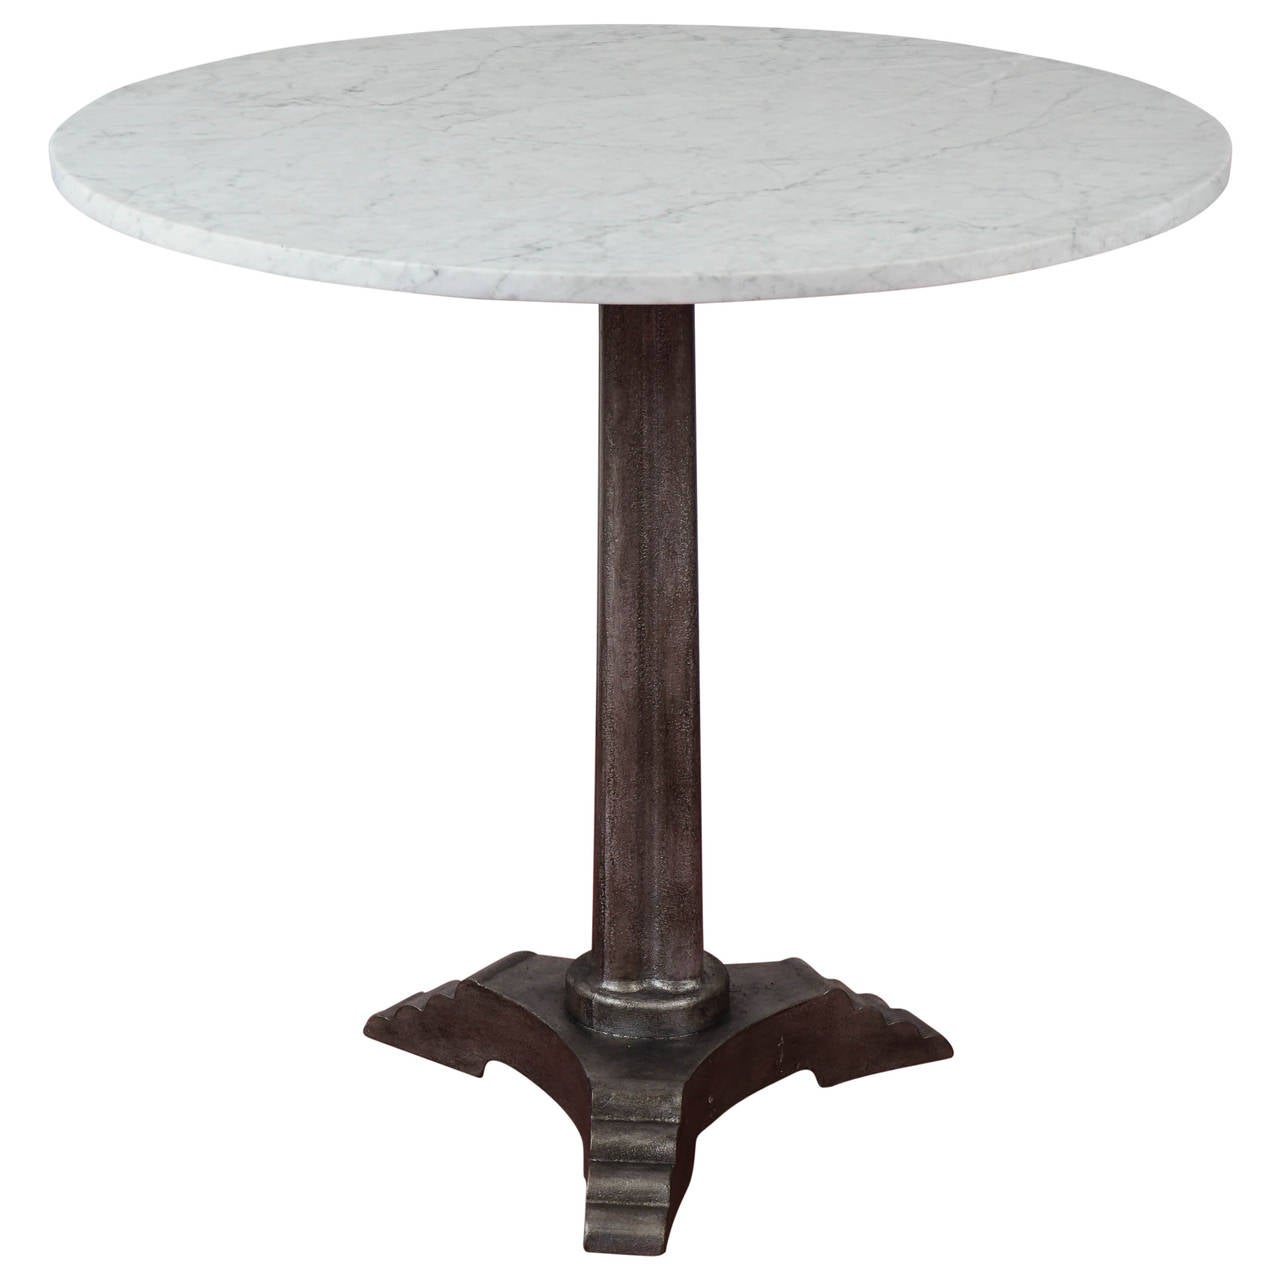 Pedestal Black Marble Top Dining Table Second